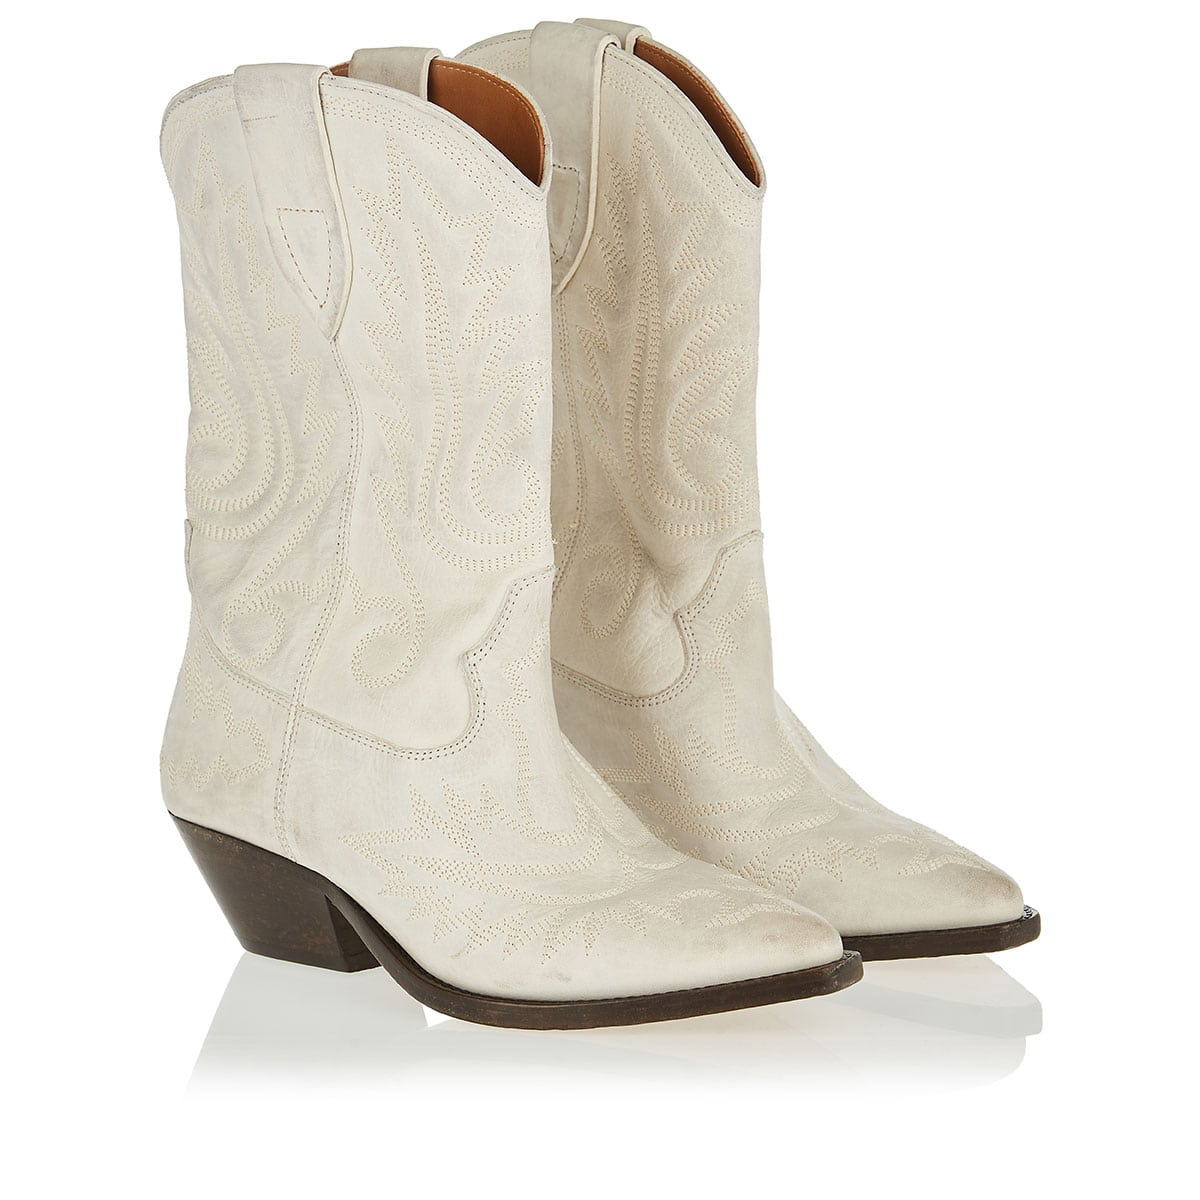 Duerto embroidered leather cowboy boots